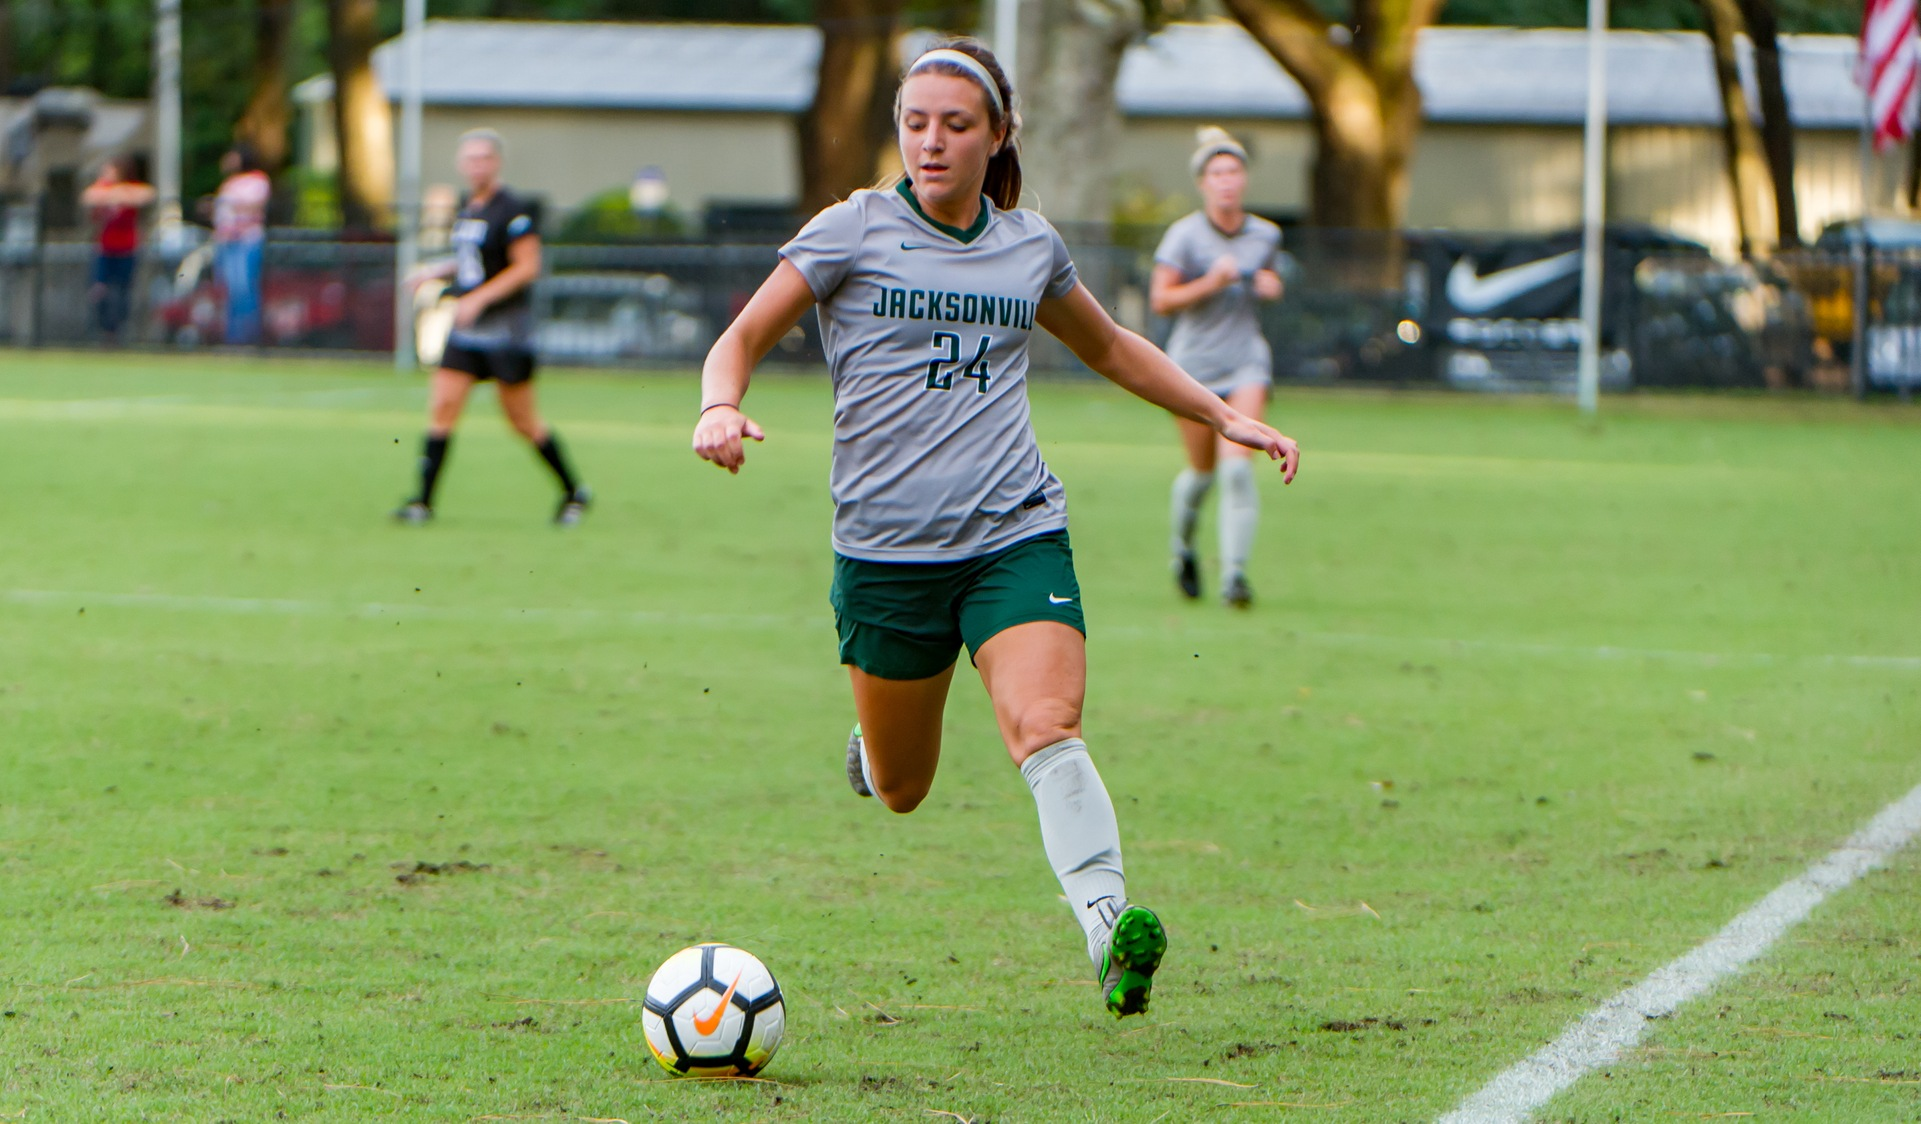 Upset-Minded Dolphins Prepare For ASUN Semifinal Showdown